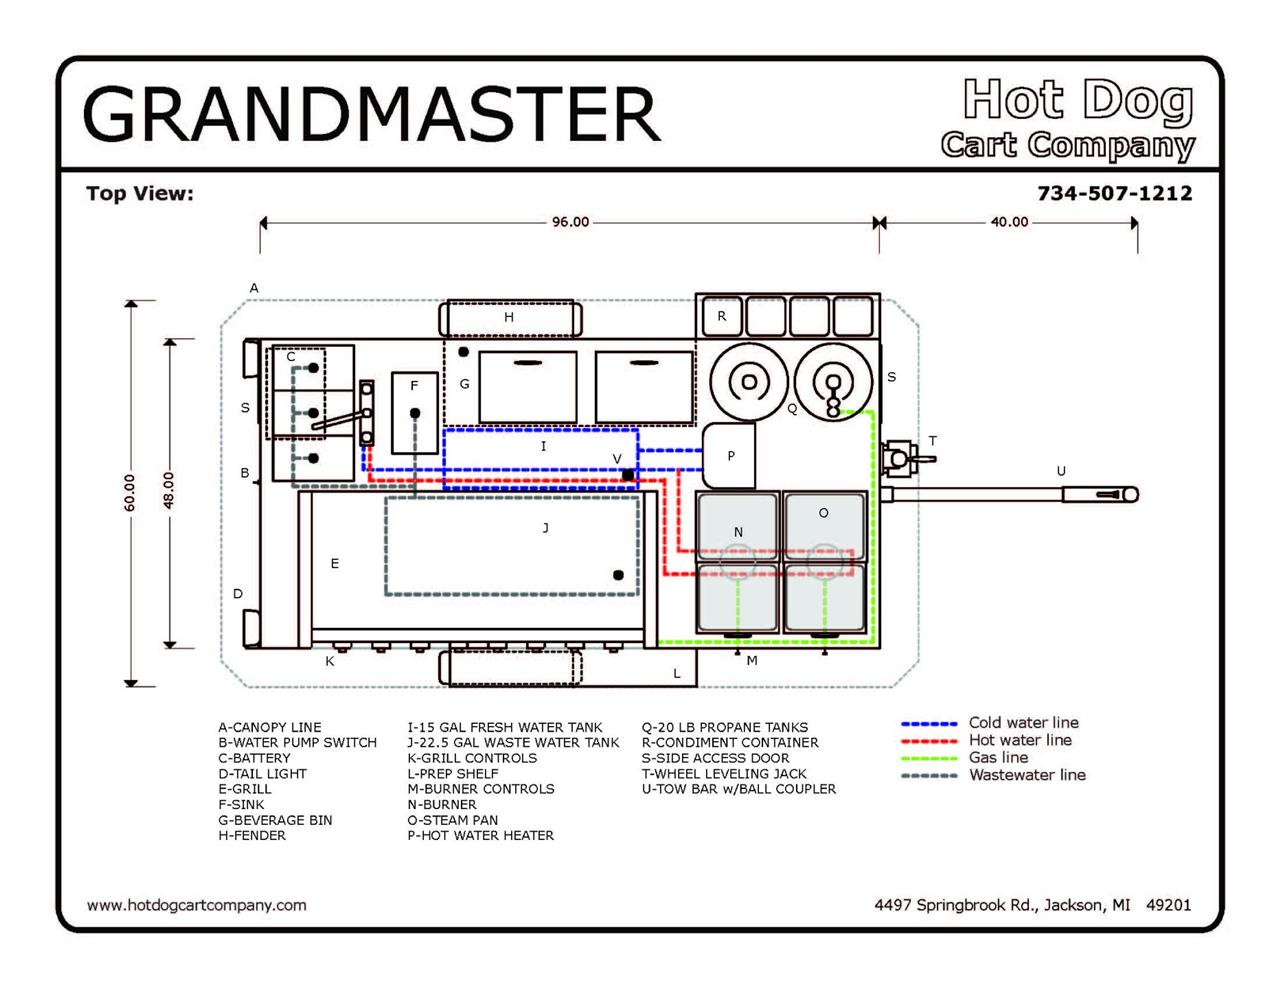 3 compartment sink plumbing diagram schematic of house wiring drain get free image about